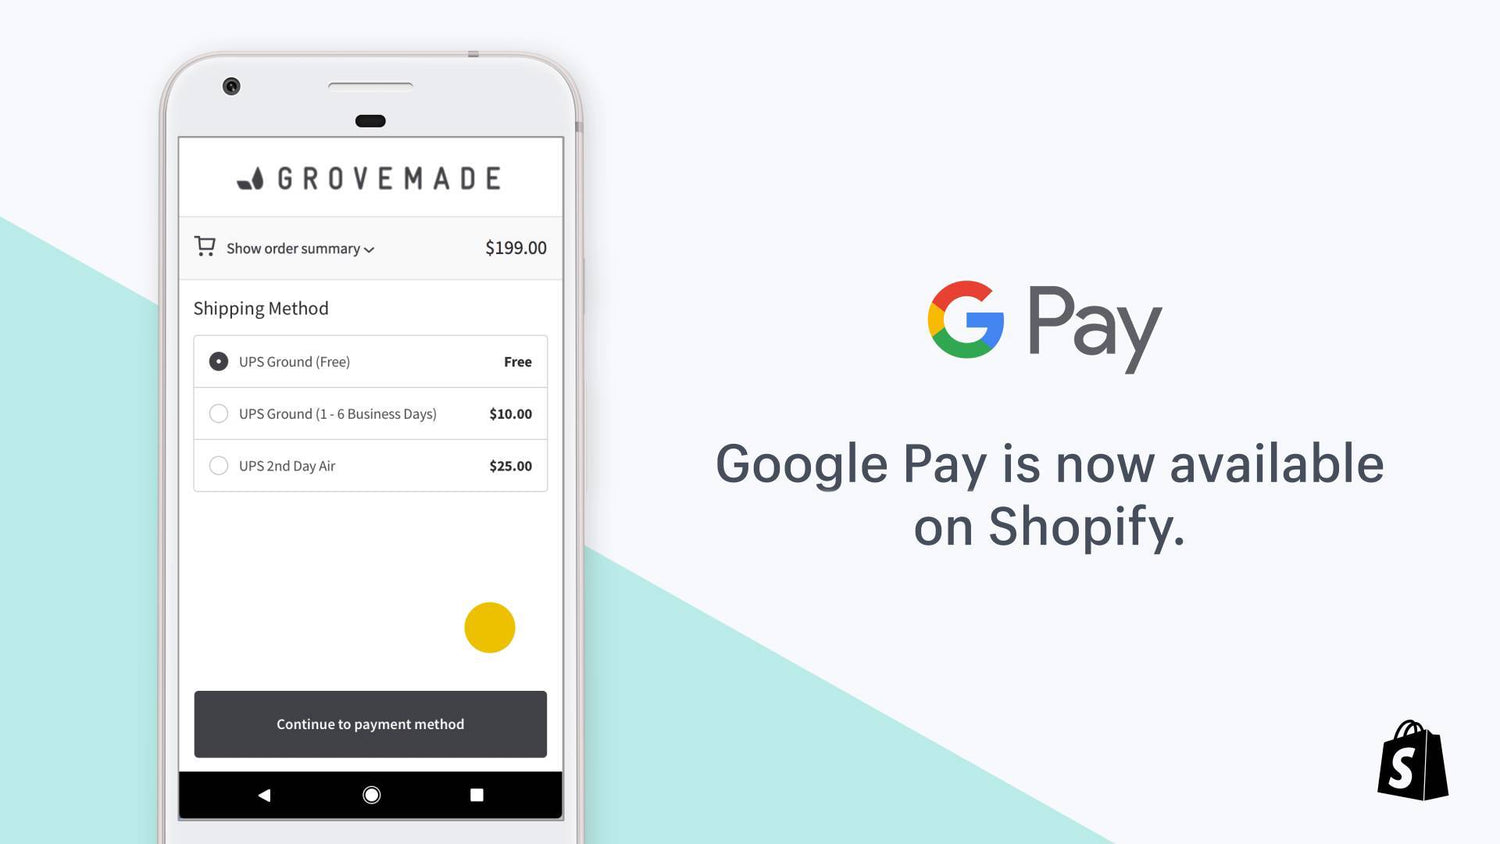 Google Pay for Shopify